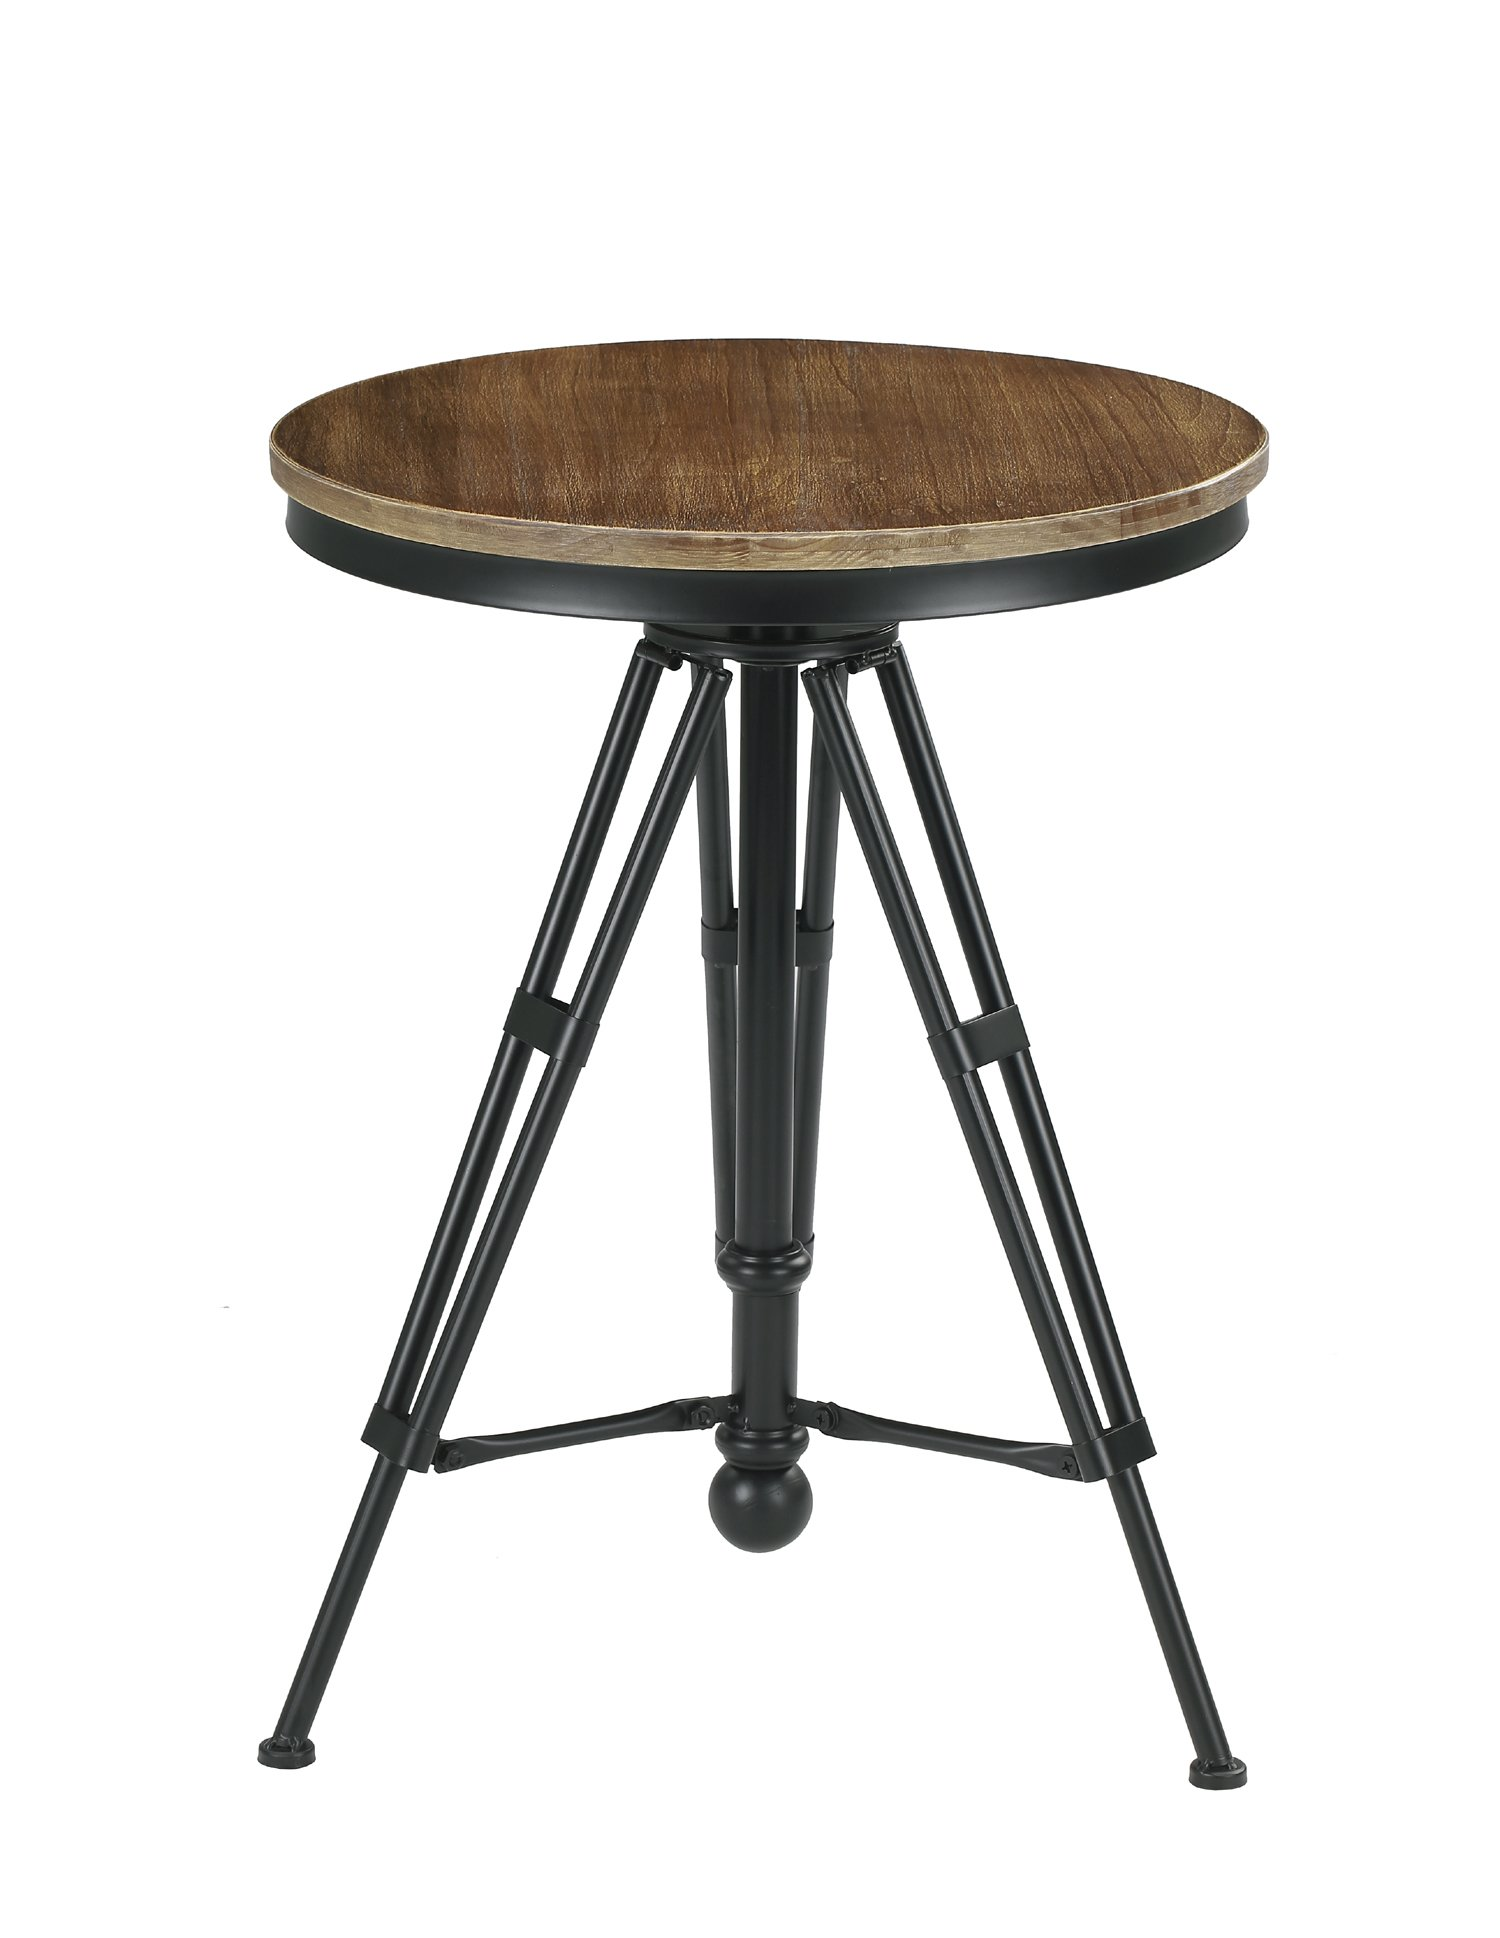 VILAVITA 30'' to 34'' Adjustable Height Swivel Round Wood Bar Bistro Table, Wooden Top with Sturdy Metal Frame Pub Table Heavy Duty Dining Cocktail Table, Retro Finish